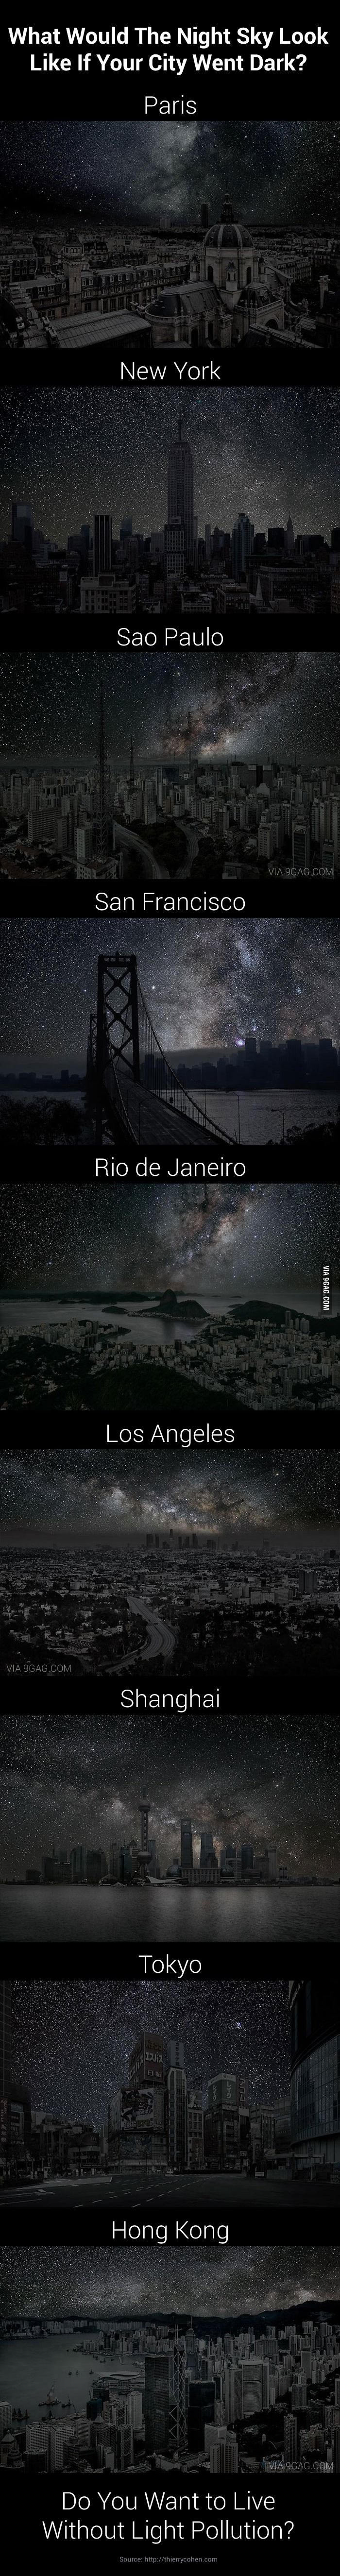 9 Amazing Night Sky of 9 Darkened Cities. Or you can just go outside the big cities